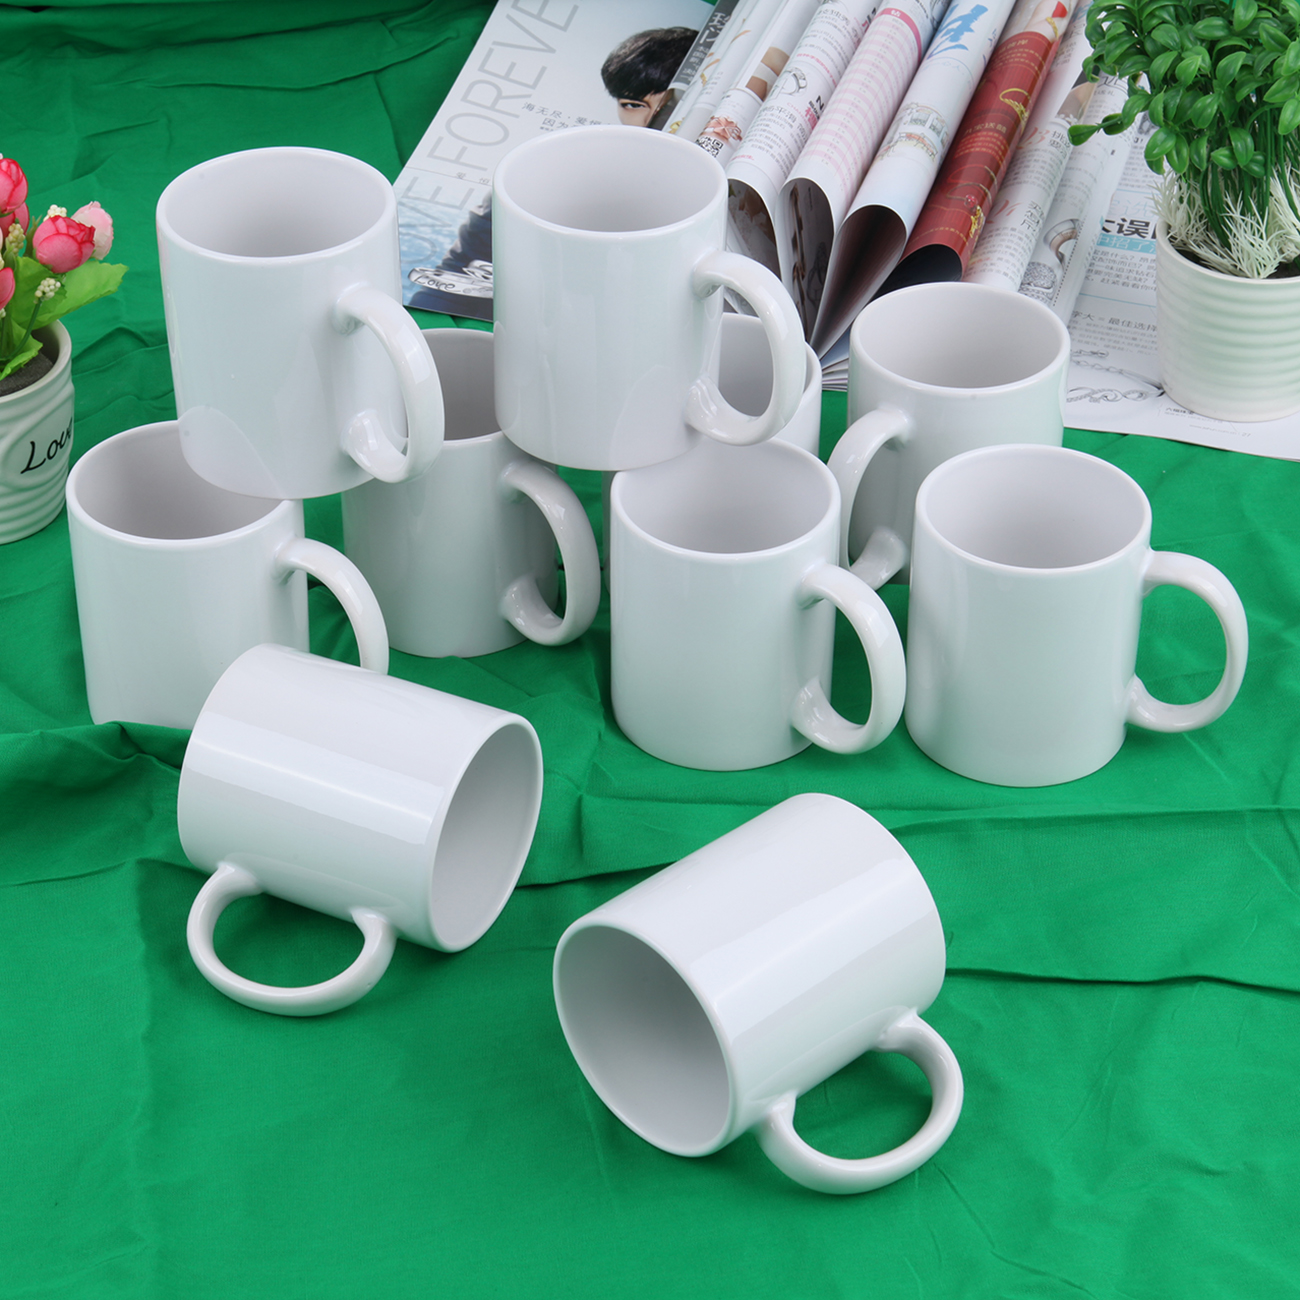 36pcs Sublimation Mug 11oz Coated DIY Heat Transfer Print White Cups Mugs